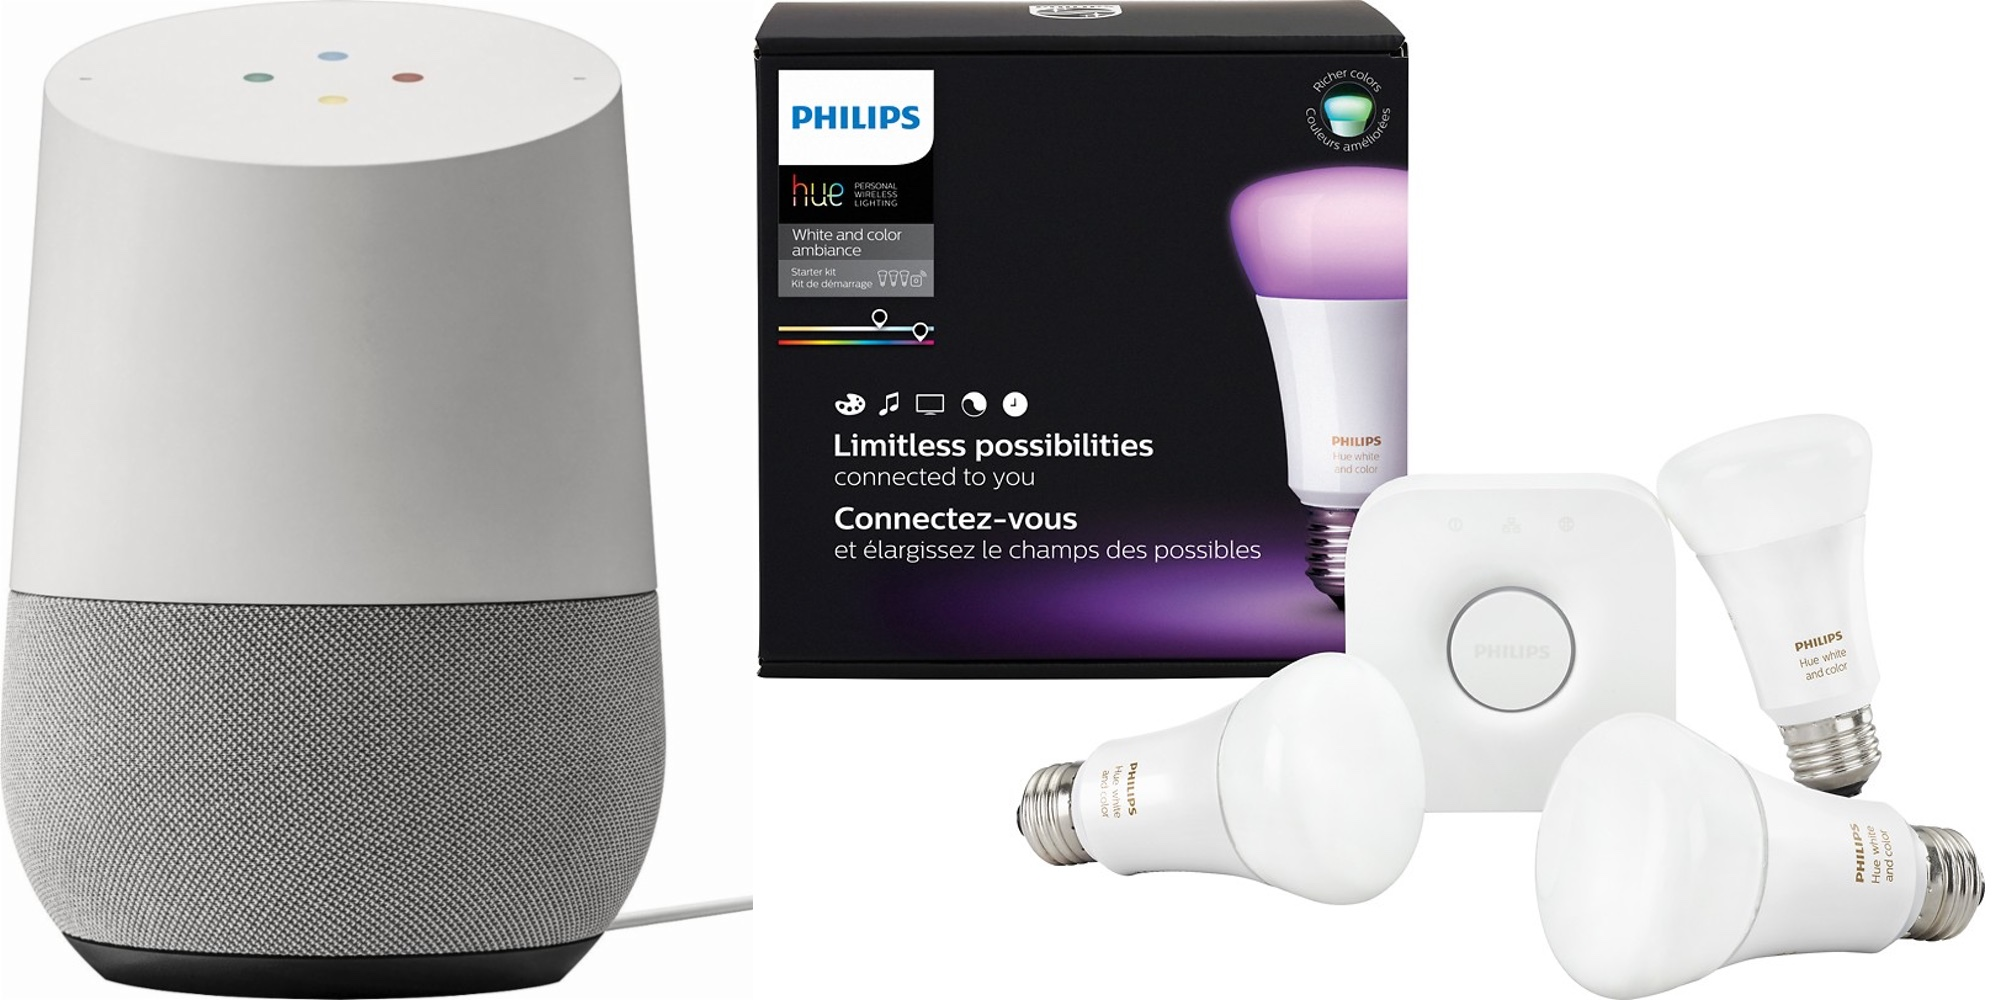 Philips Hue Examples Daily Deals Google Home And Philips Hue Color Starter Kit